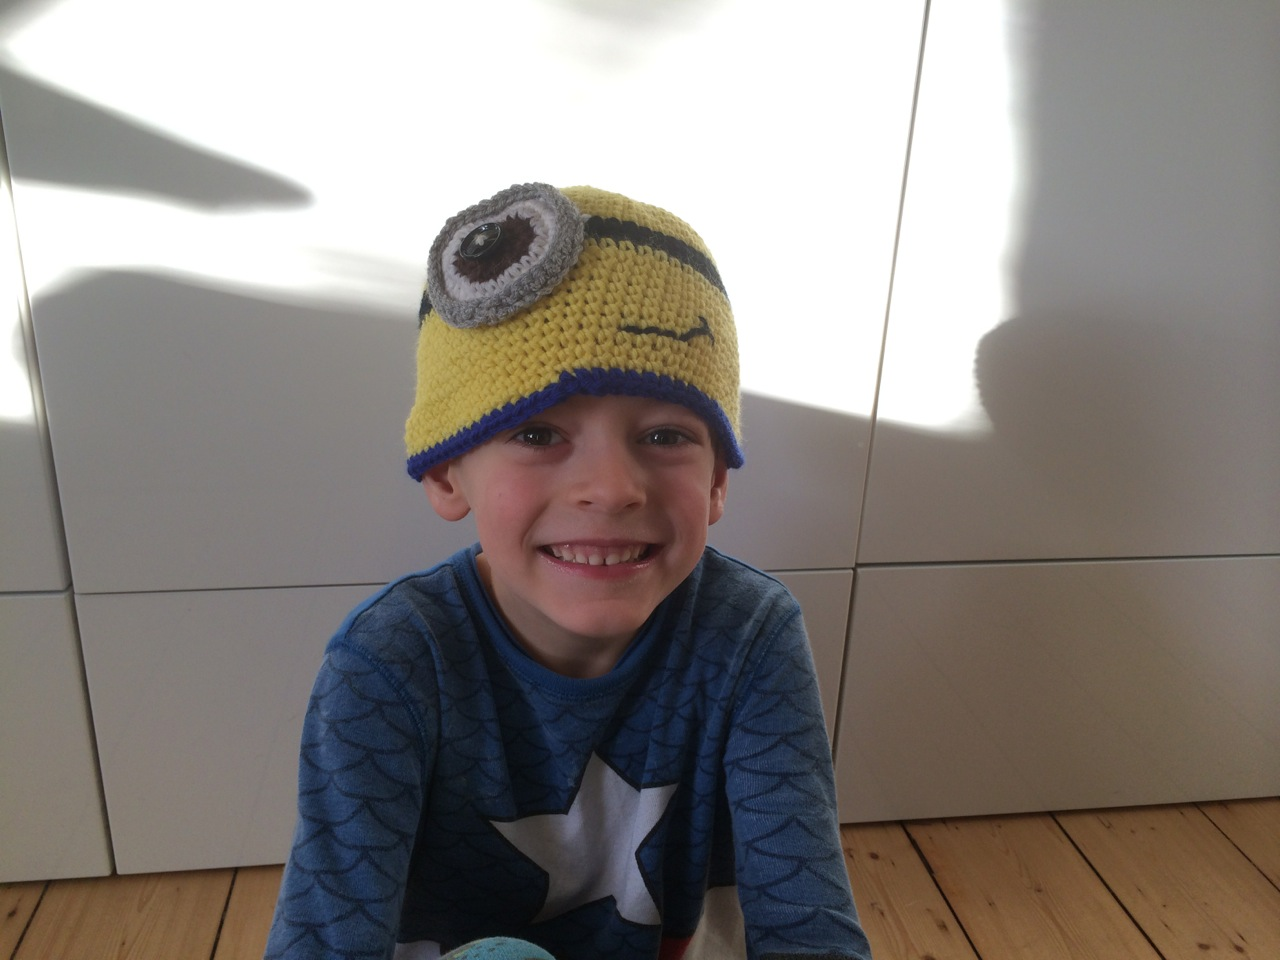 A Minion hat for Mr. H